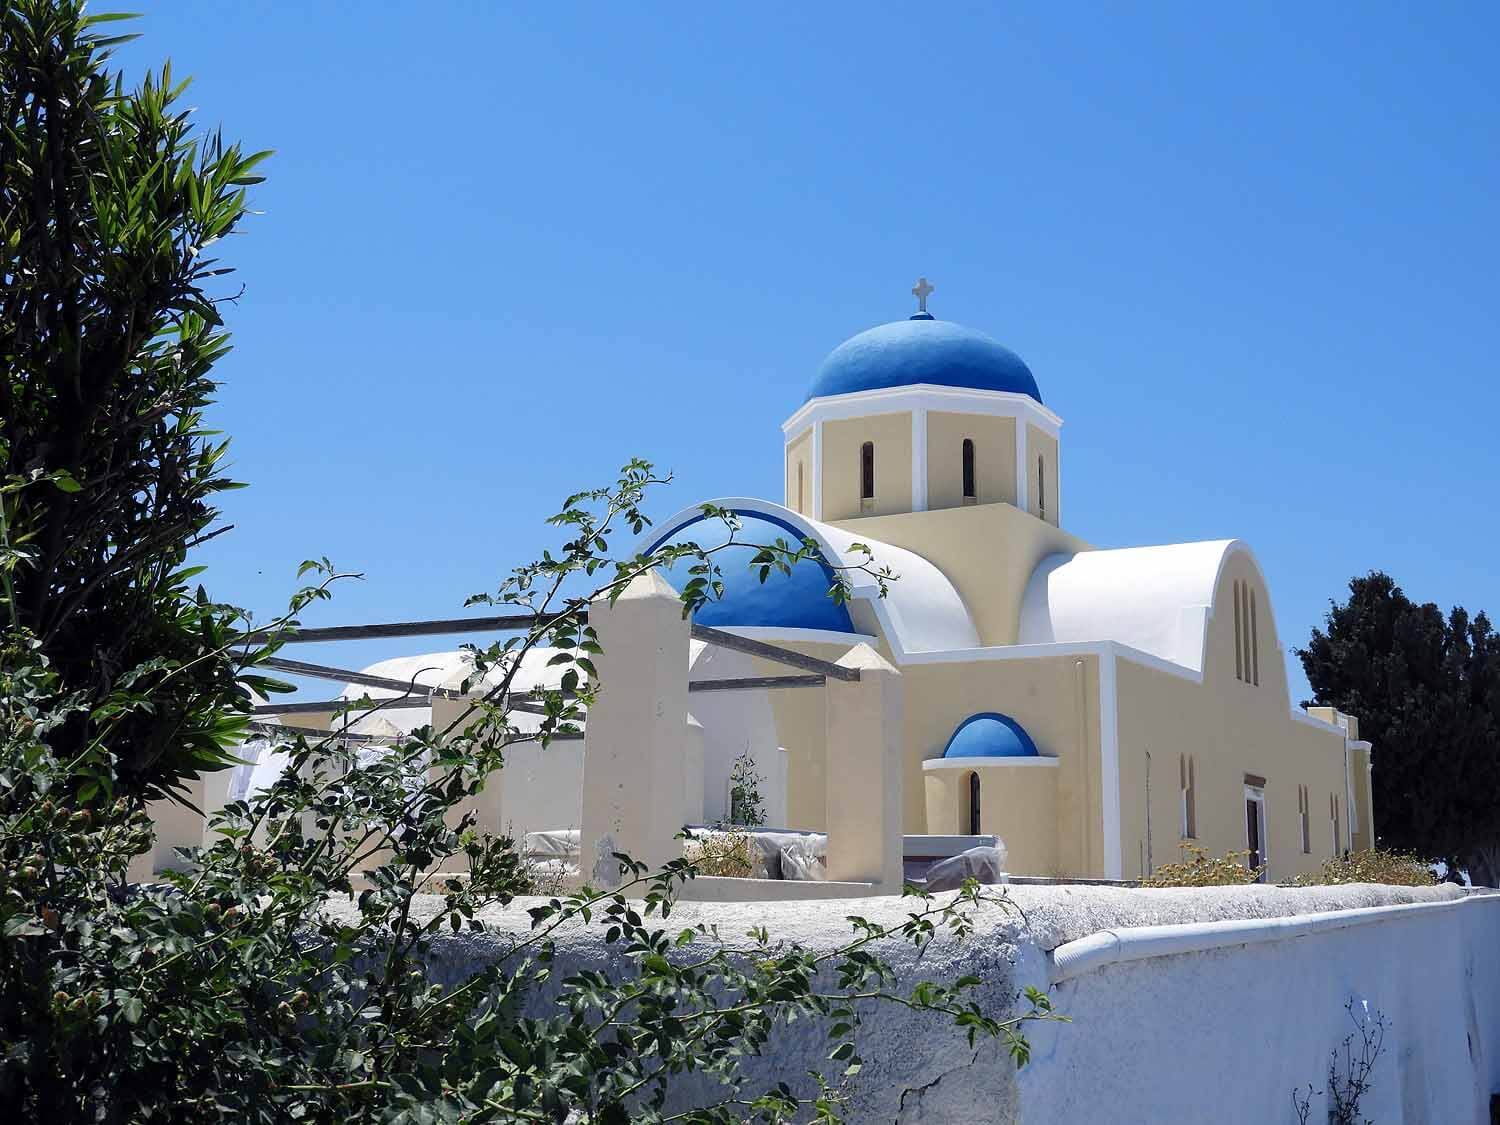 greece-santorini-blue-dome.JPG